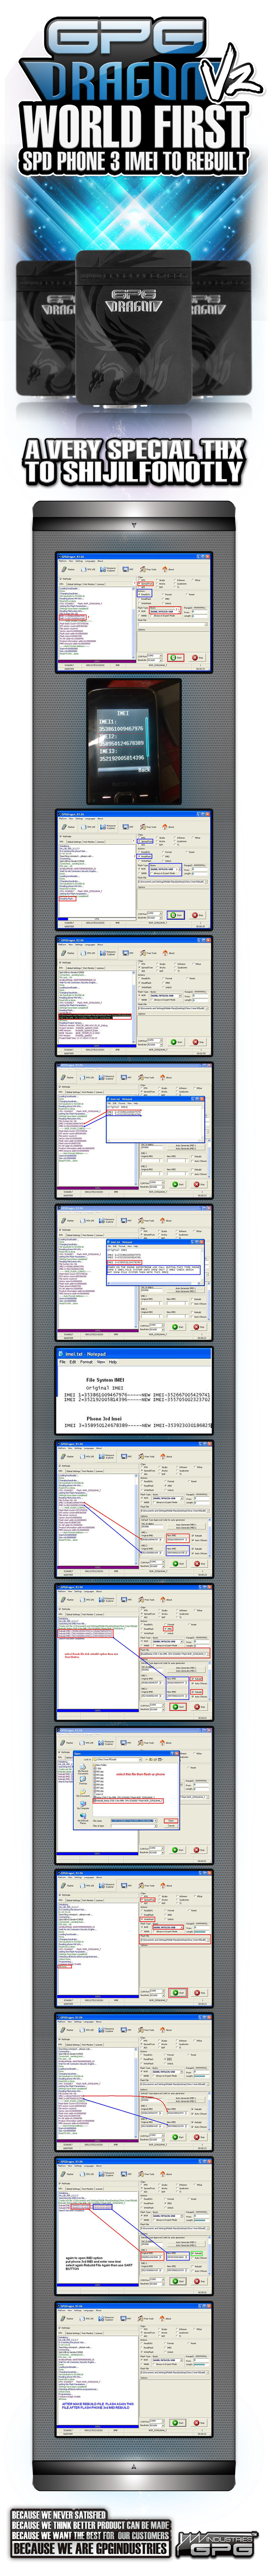 Do you want Change the SPD 3 IMEI at once?